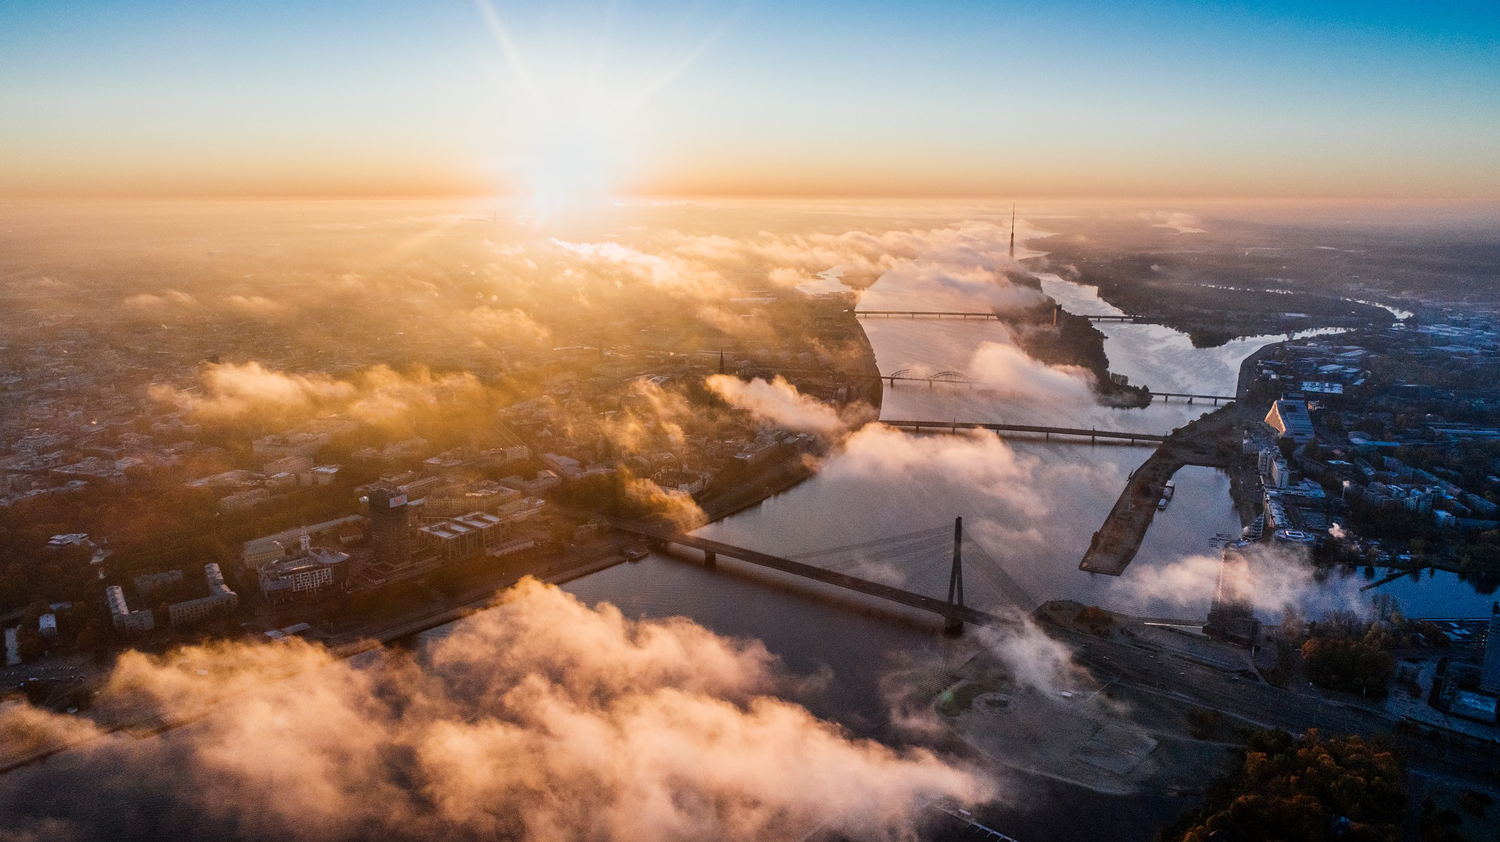 aerial-view-city-bridge-sunset-drone-alex-unsplash.png